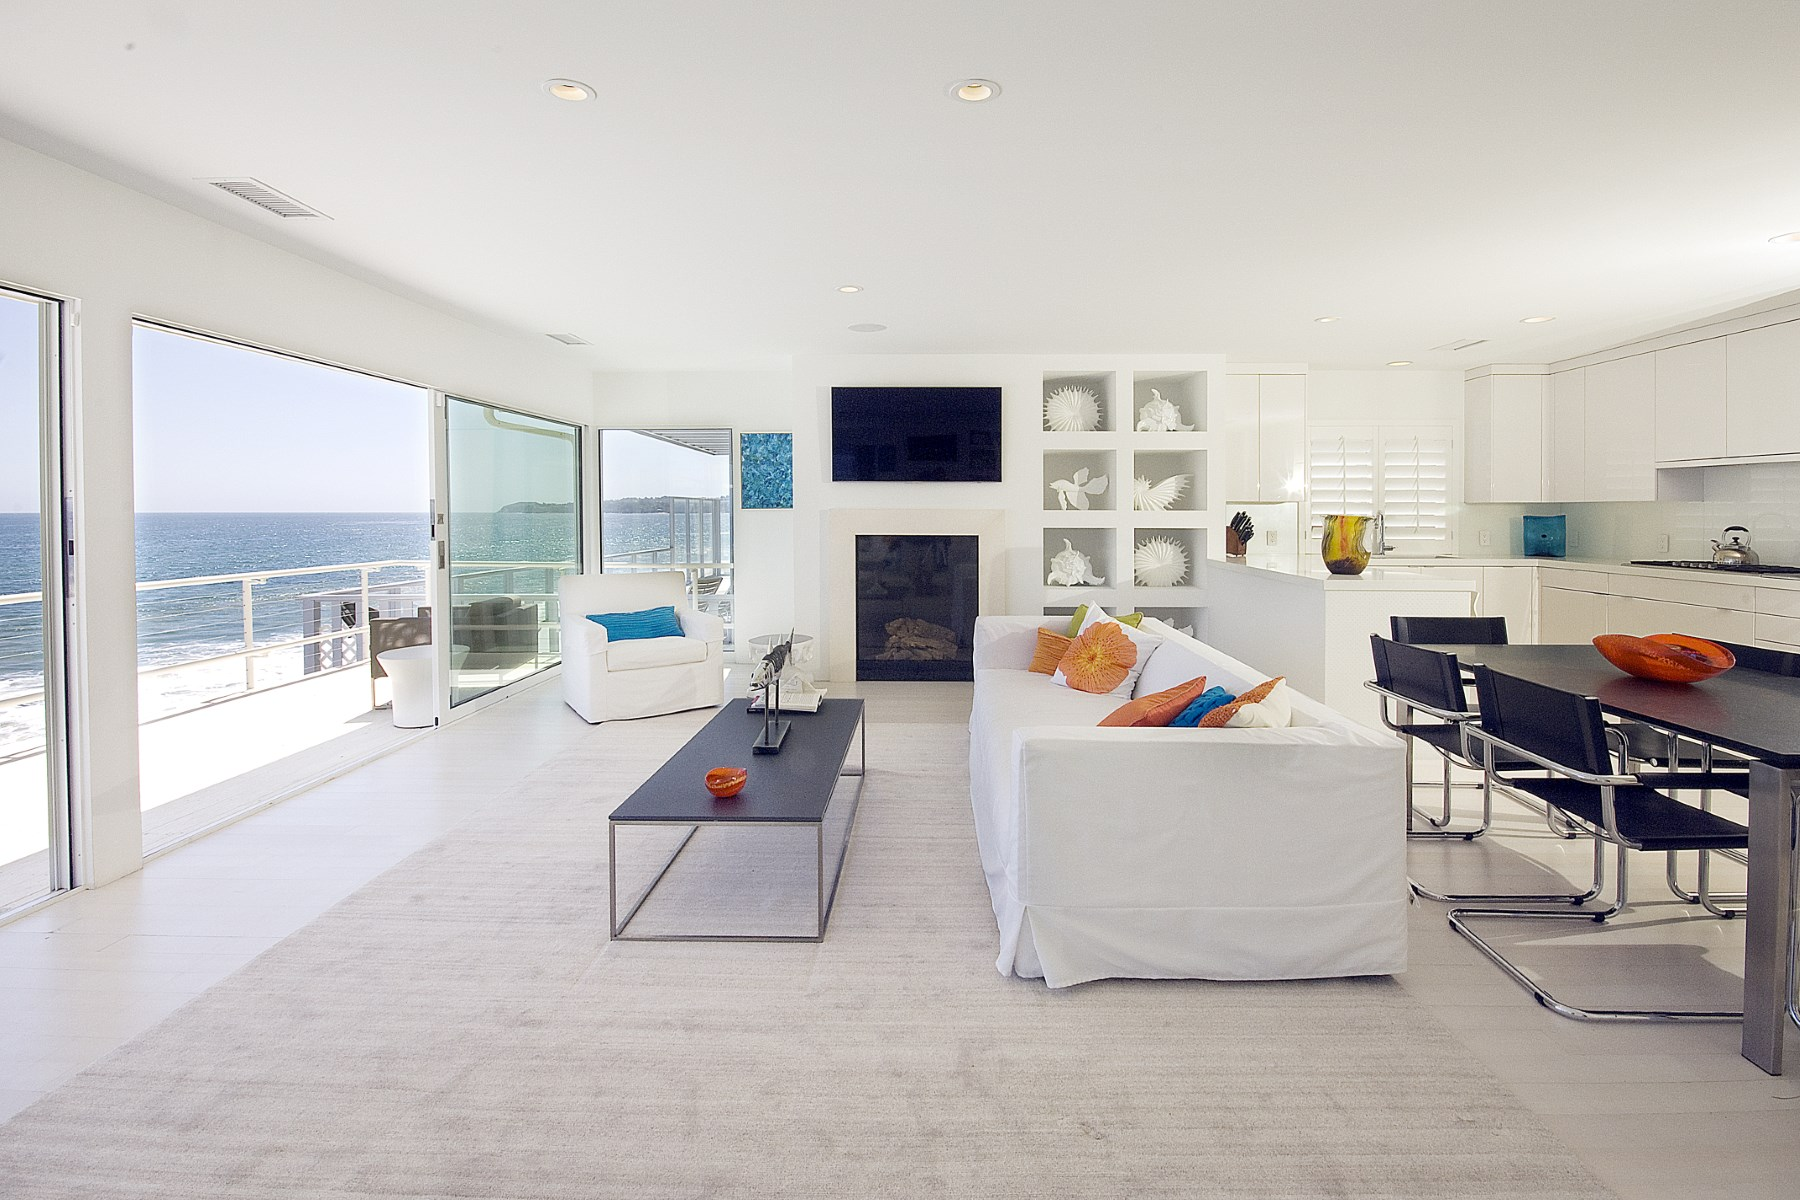 Villa per Affitto alle ore Malibu Cove Colony Lease 26928 Malibu Cove Colony Dr. Malibu, California, 90265 Stati Uniti